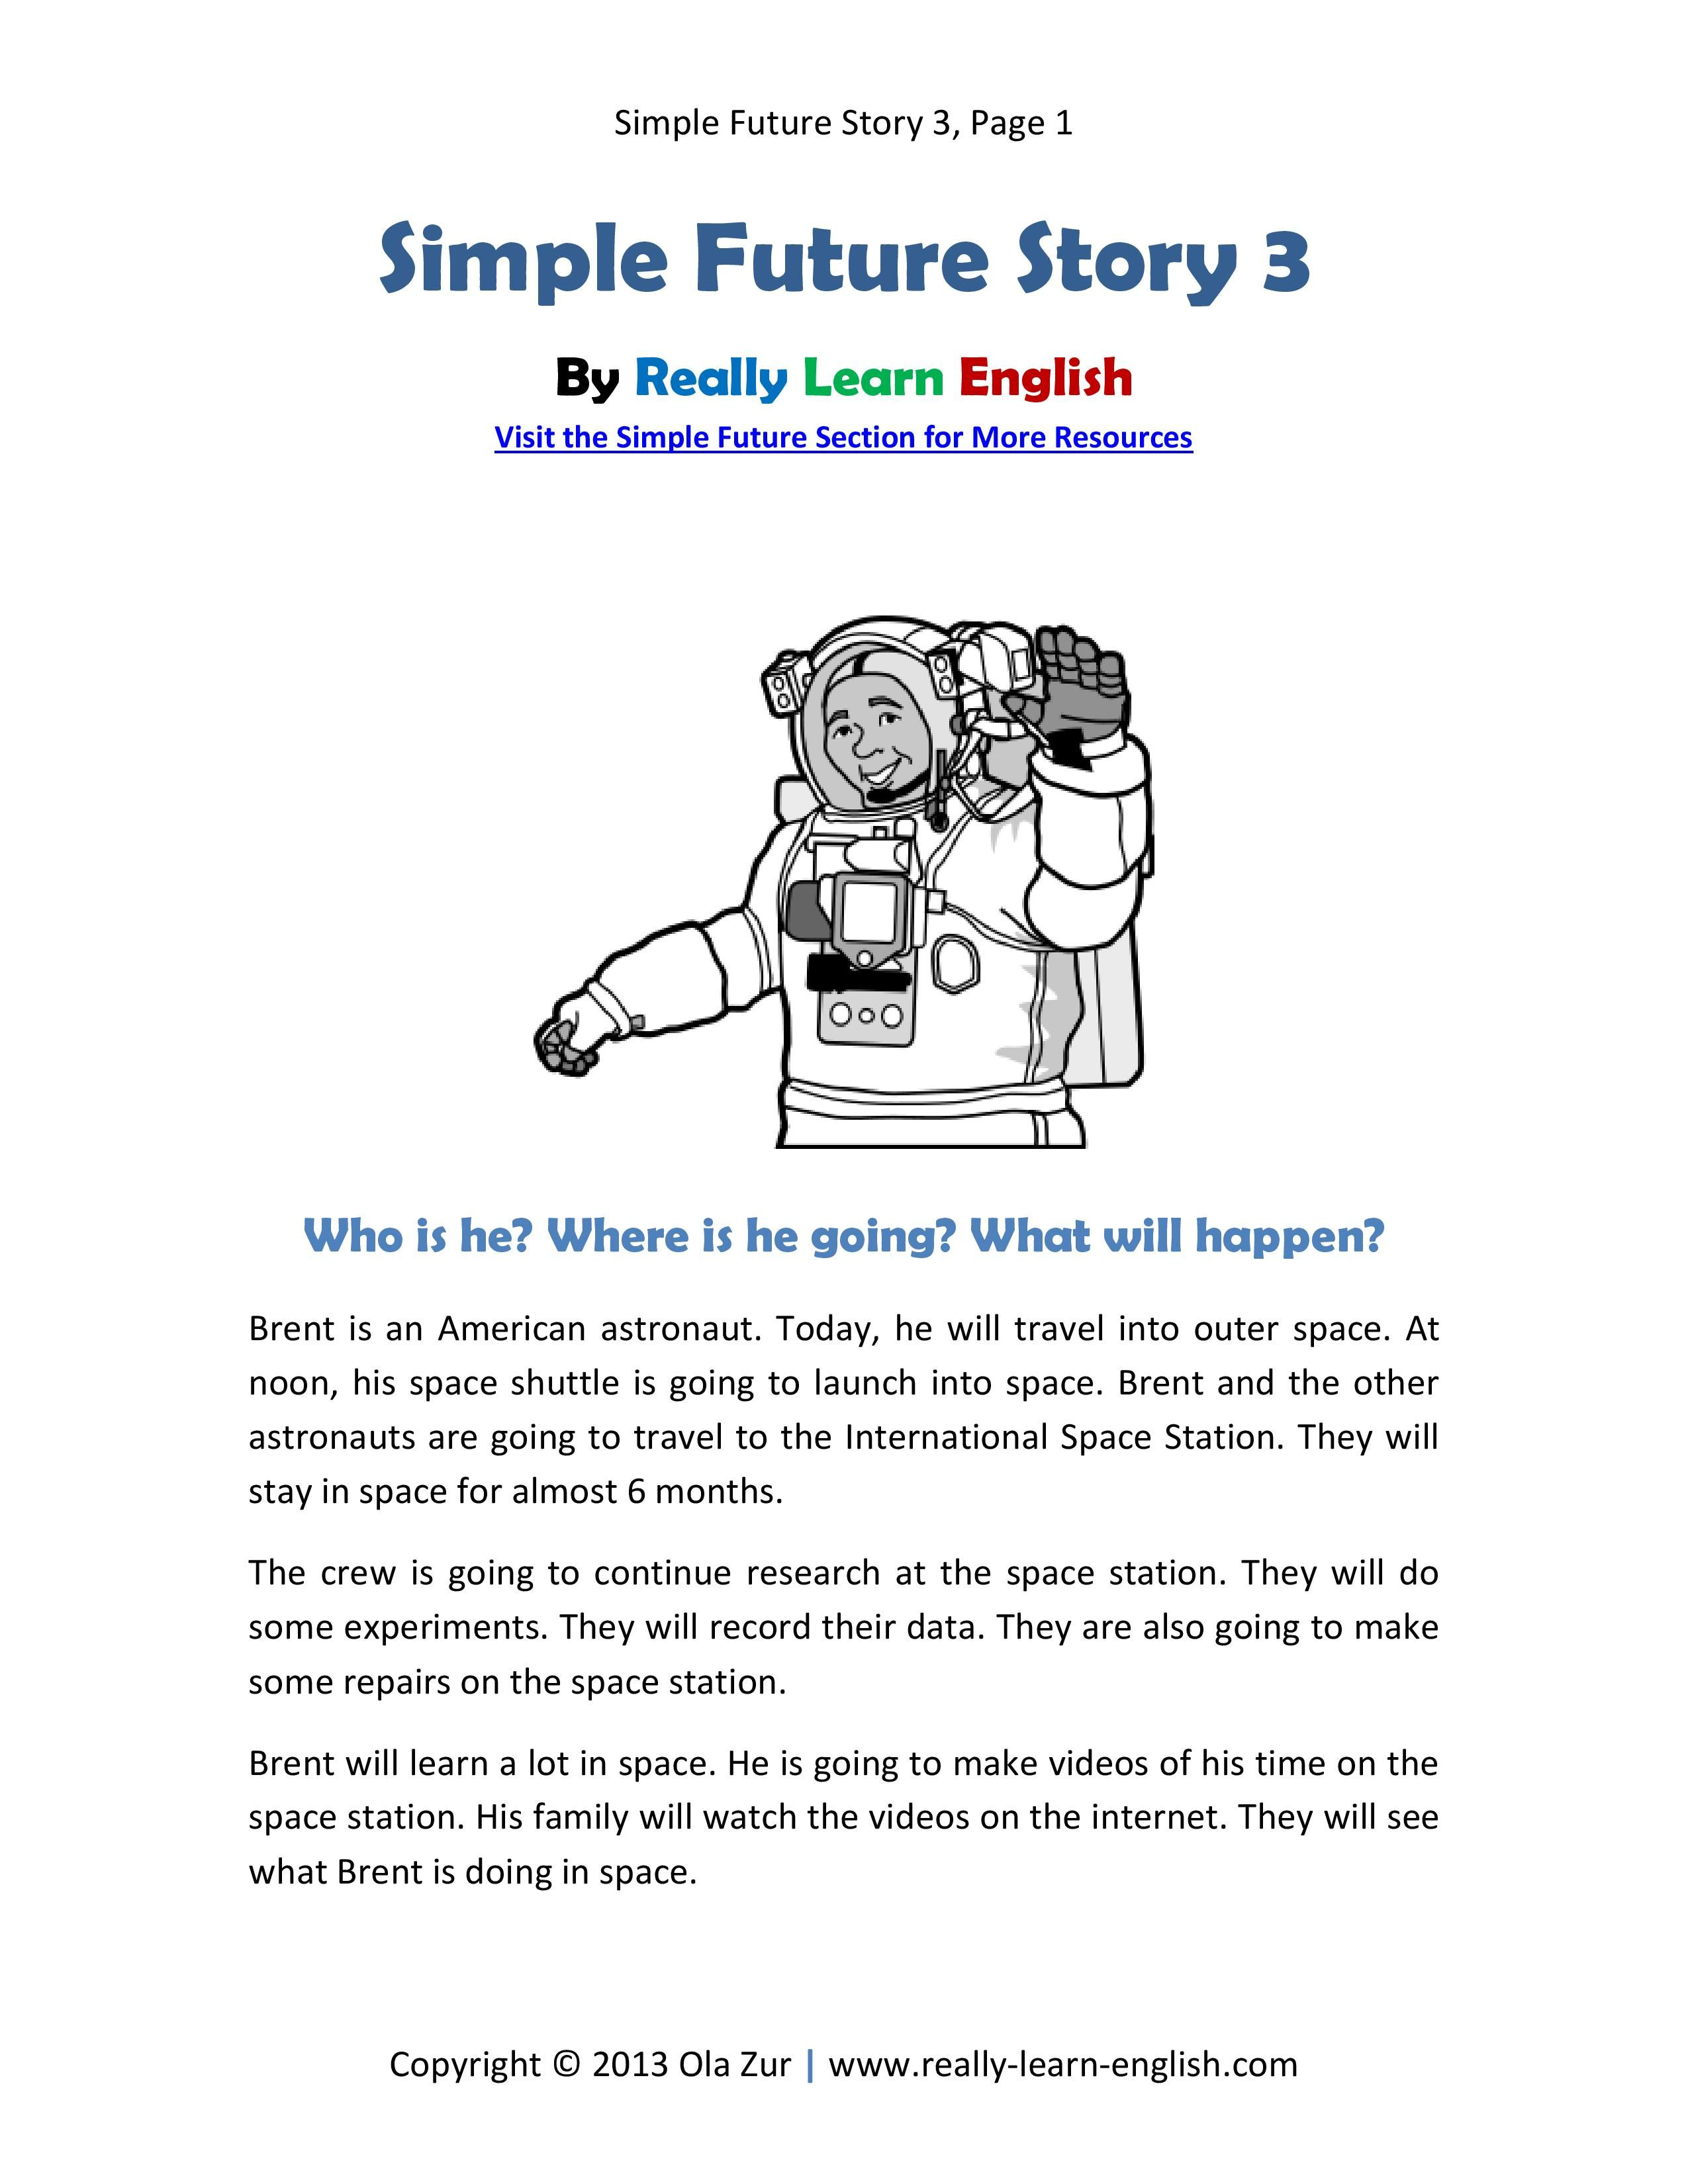 Free Printable Story And Exercises To Practice The English